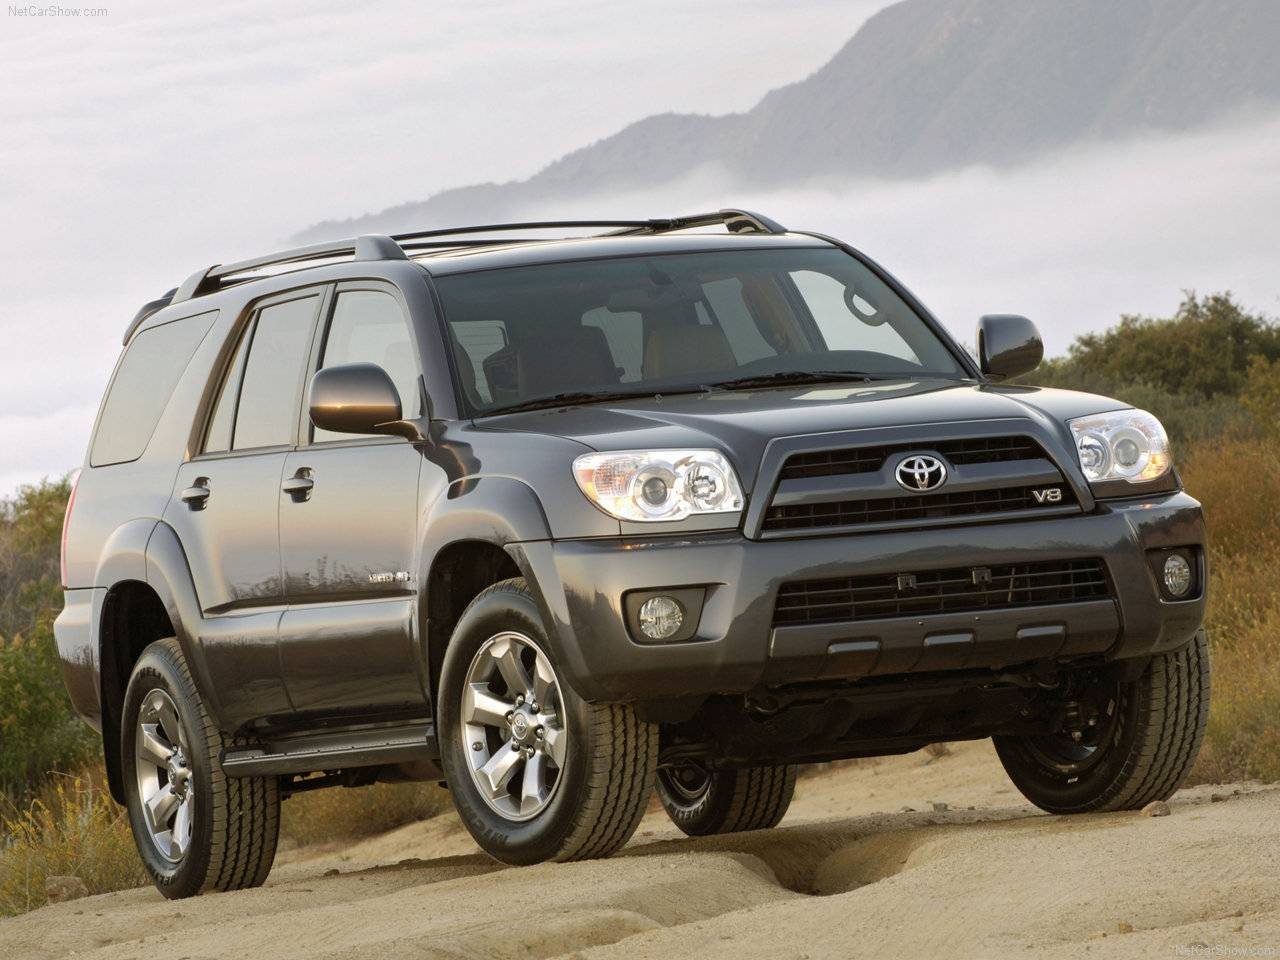 2009 toyota 4runner toyota autos spain. Black Bedroom Furniture Sets. Home Design Ideas